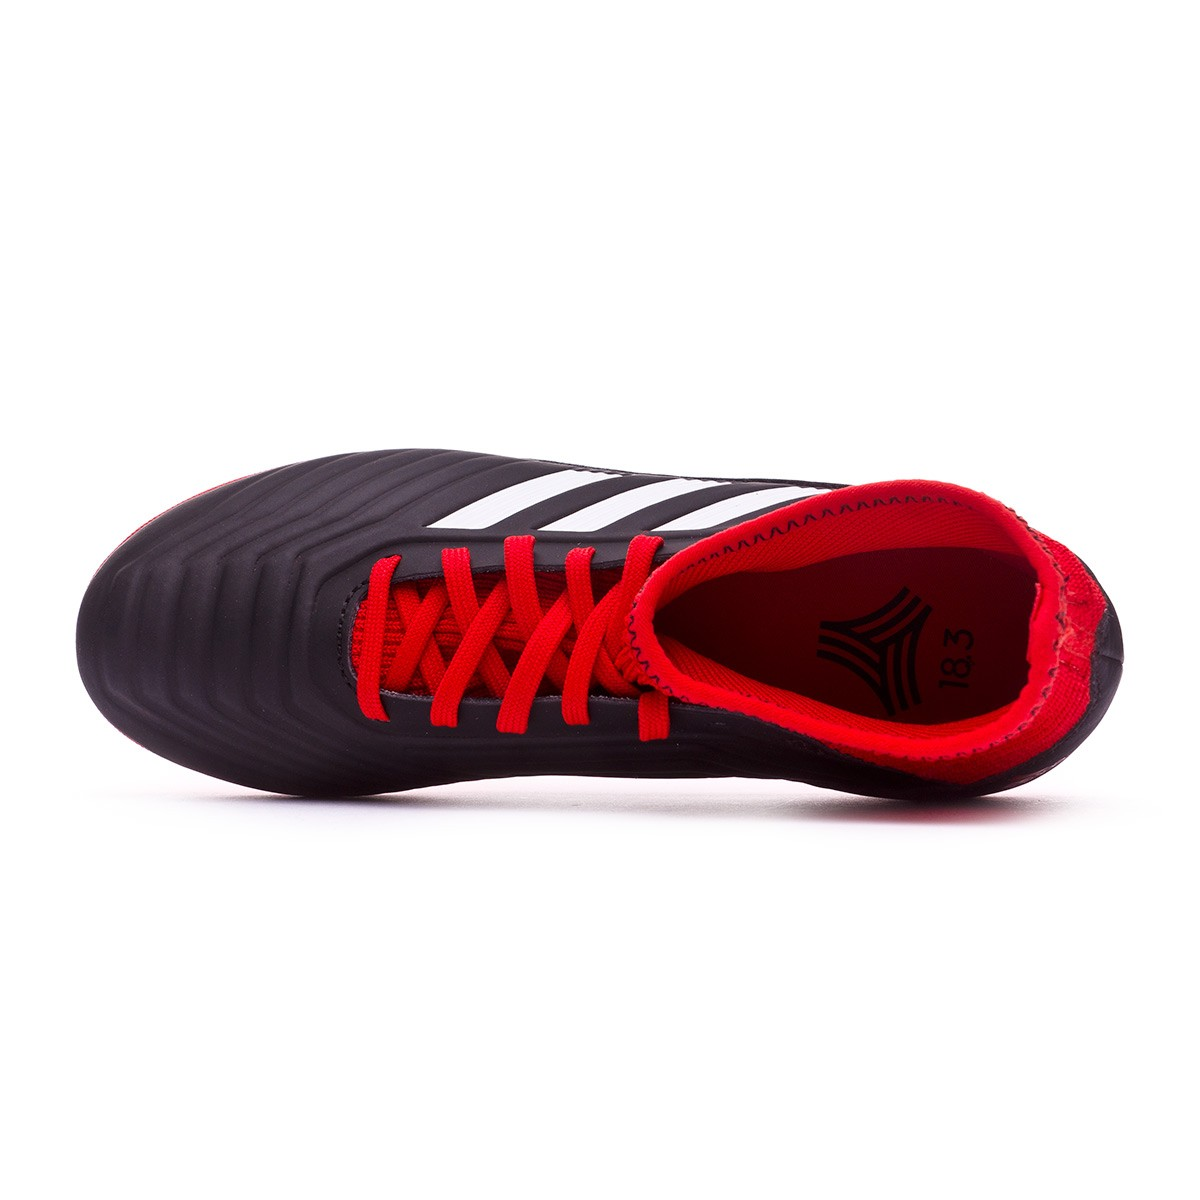 official photos 035ea 2e5be Football Boot adidas Kids Predator Tango 18.3 Turf Core black-White-Red -  Football store Fútbol Emotion